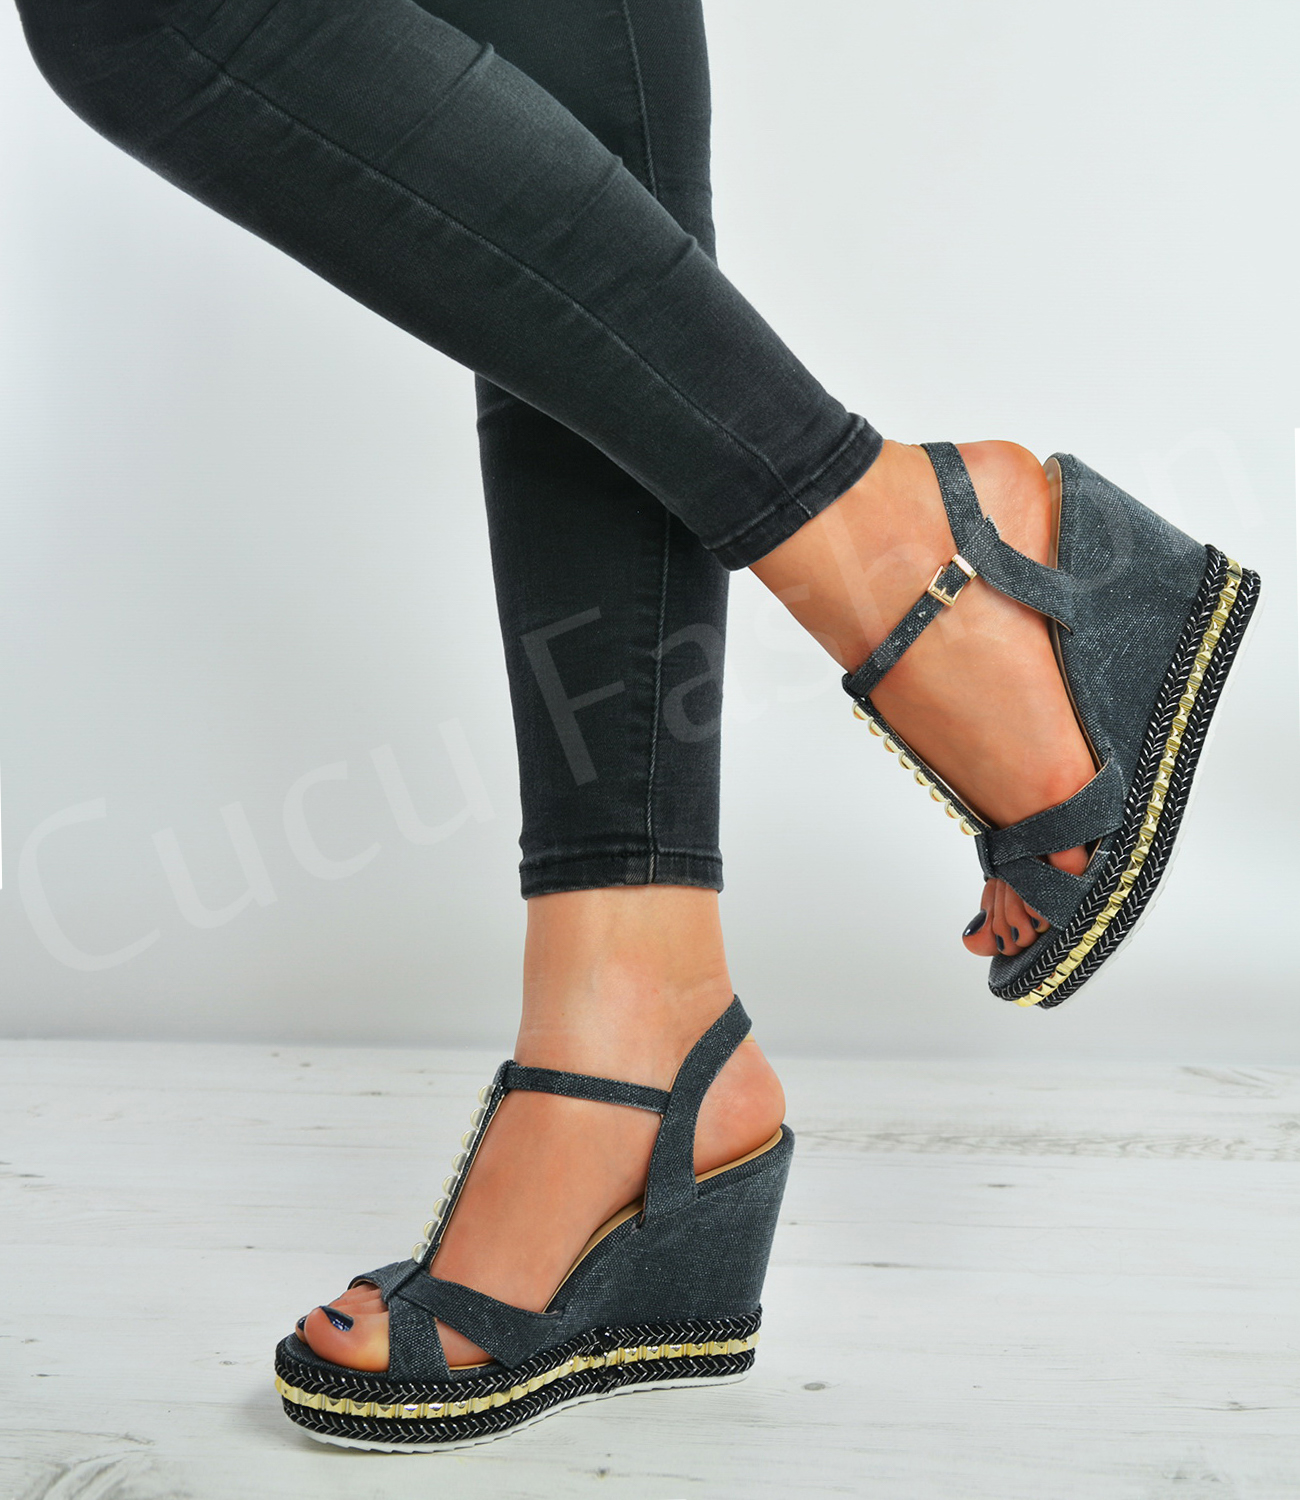 Wedges Wedge Heels Sale: Save Up to 75% Off! Shop perscrib-serp.cf's huge selection of Wedges Wedge Heels - Over styles available. FREE Shipping & Exchanges, and a % price guarantee!